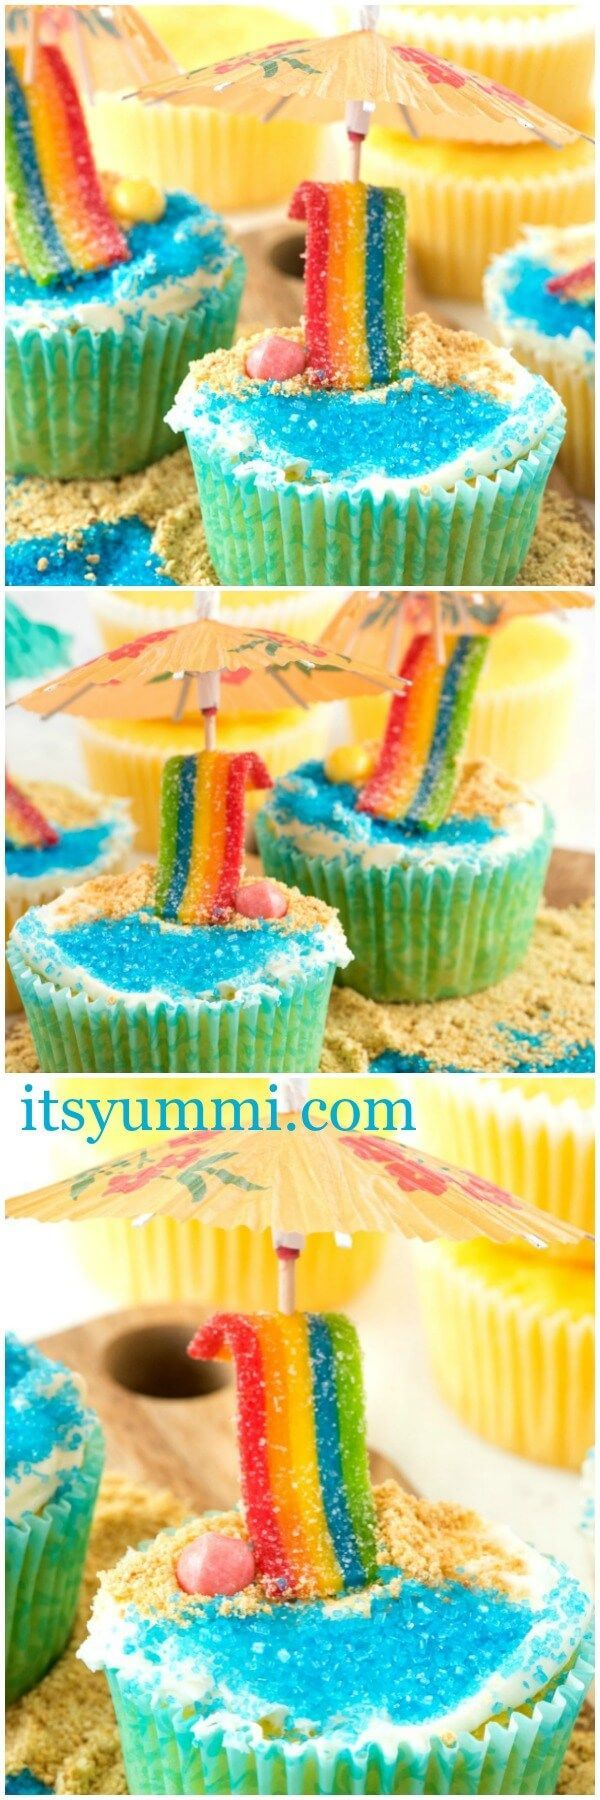 Beach cupcakes are a fun and easy summer-themed dessert. In my opinion, the best cupcakes recipe to make for any summer party! Lemon cupcakes decorated to look like a day at the beach! | Easy dessert | easy cupcakes | summer fun | baking